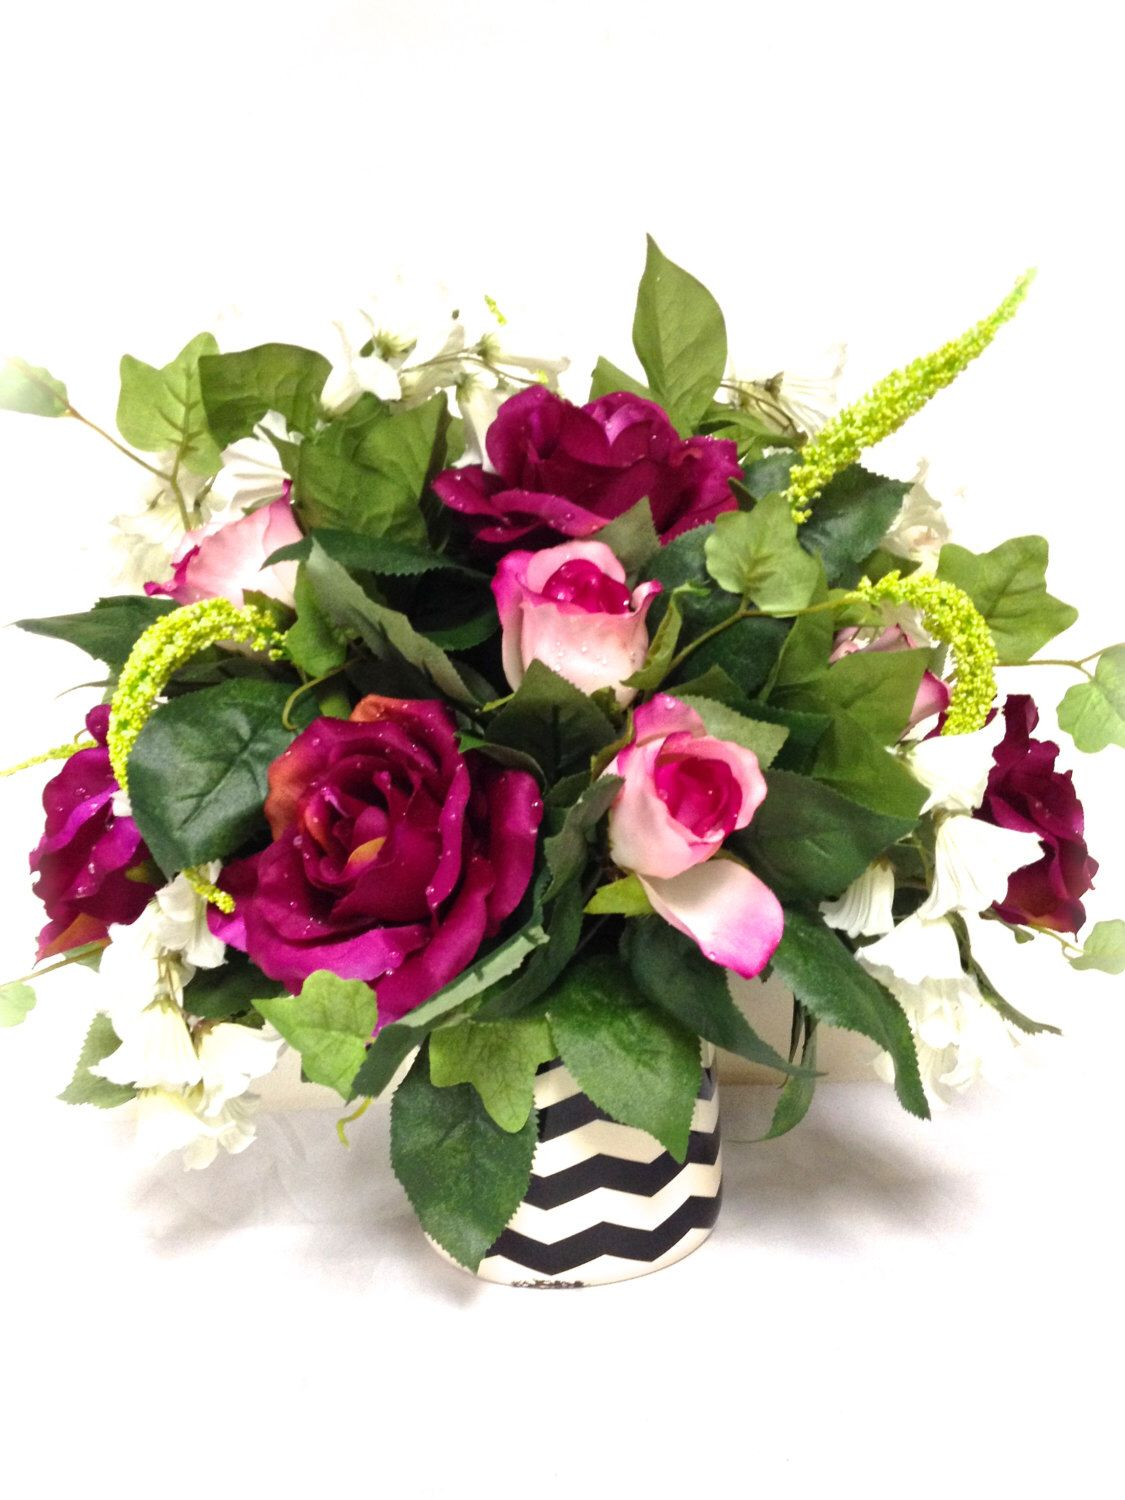 Silk floral arrangement floral centerpiece fuchsia pink lime green silk floral arrangement floral centerpiece fuchsia pink lime green silk flowers 15x8 black white chevron vase mightylinksfo Images